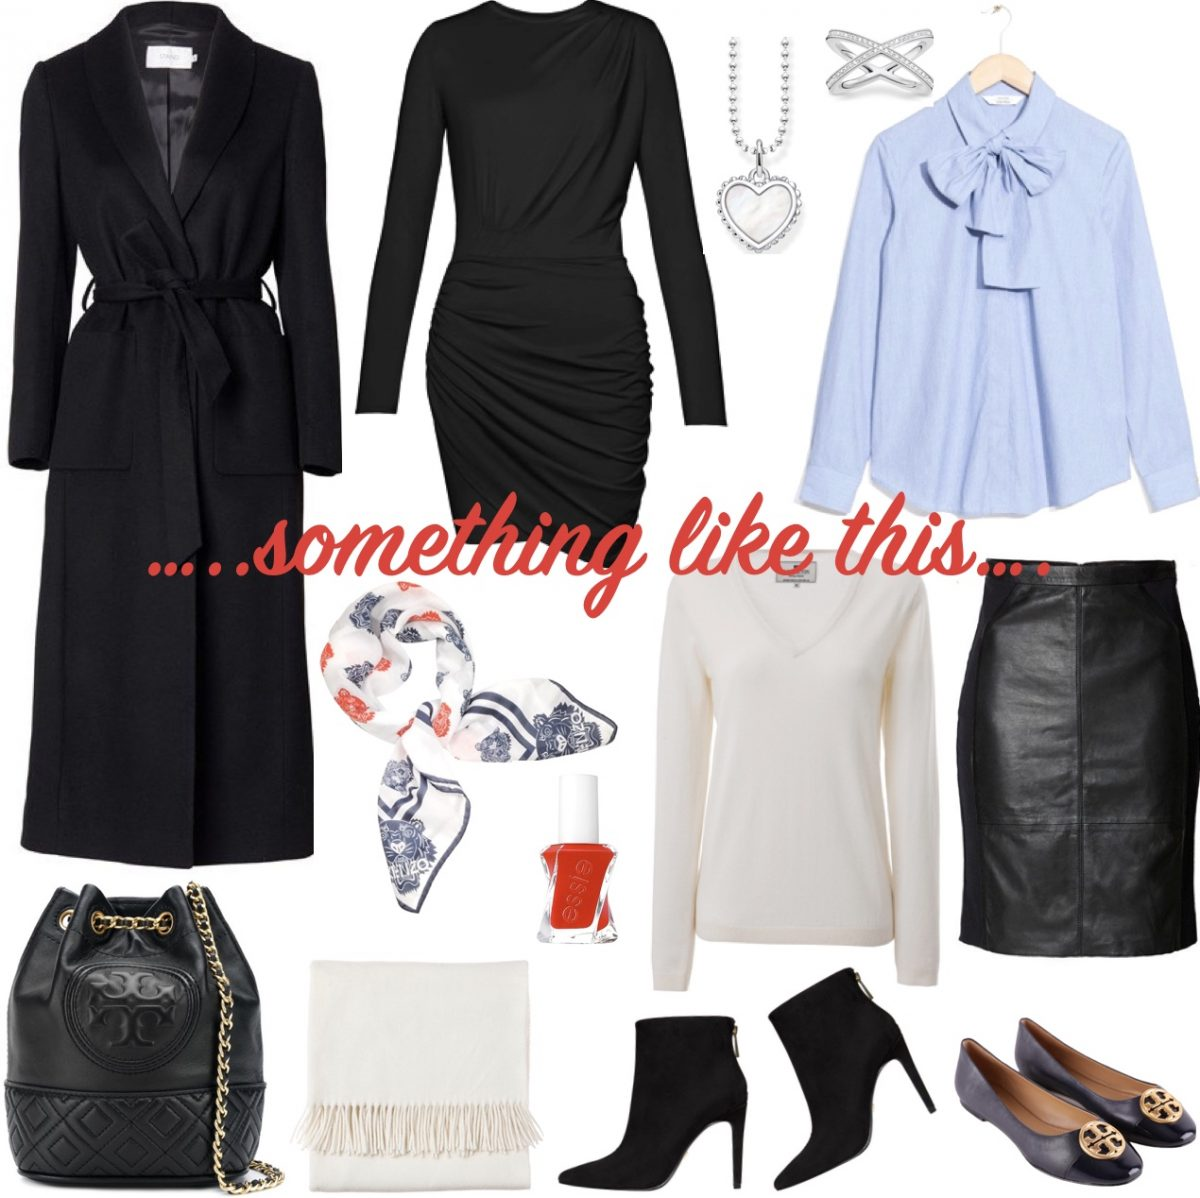 Outfit on SALE….